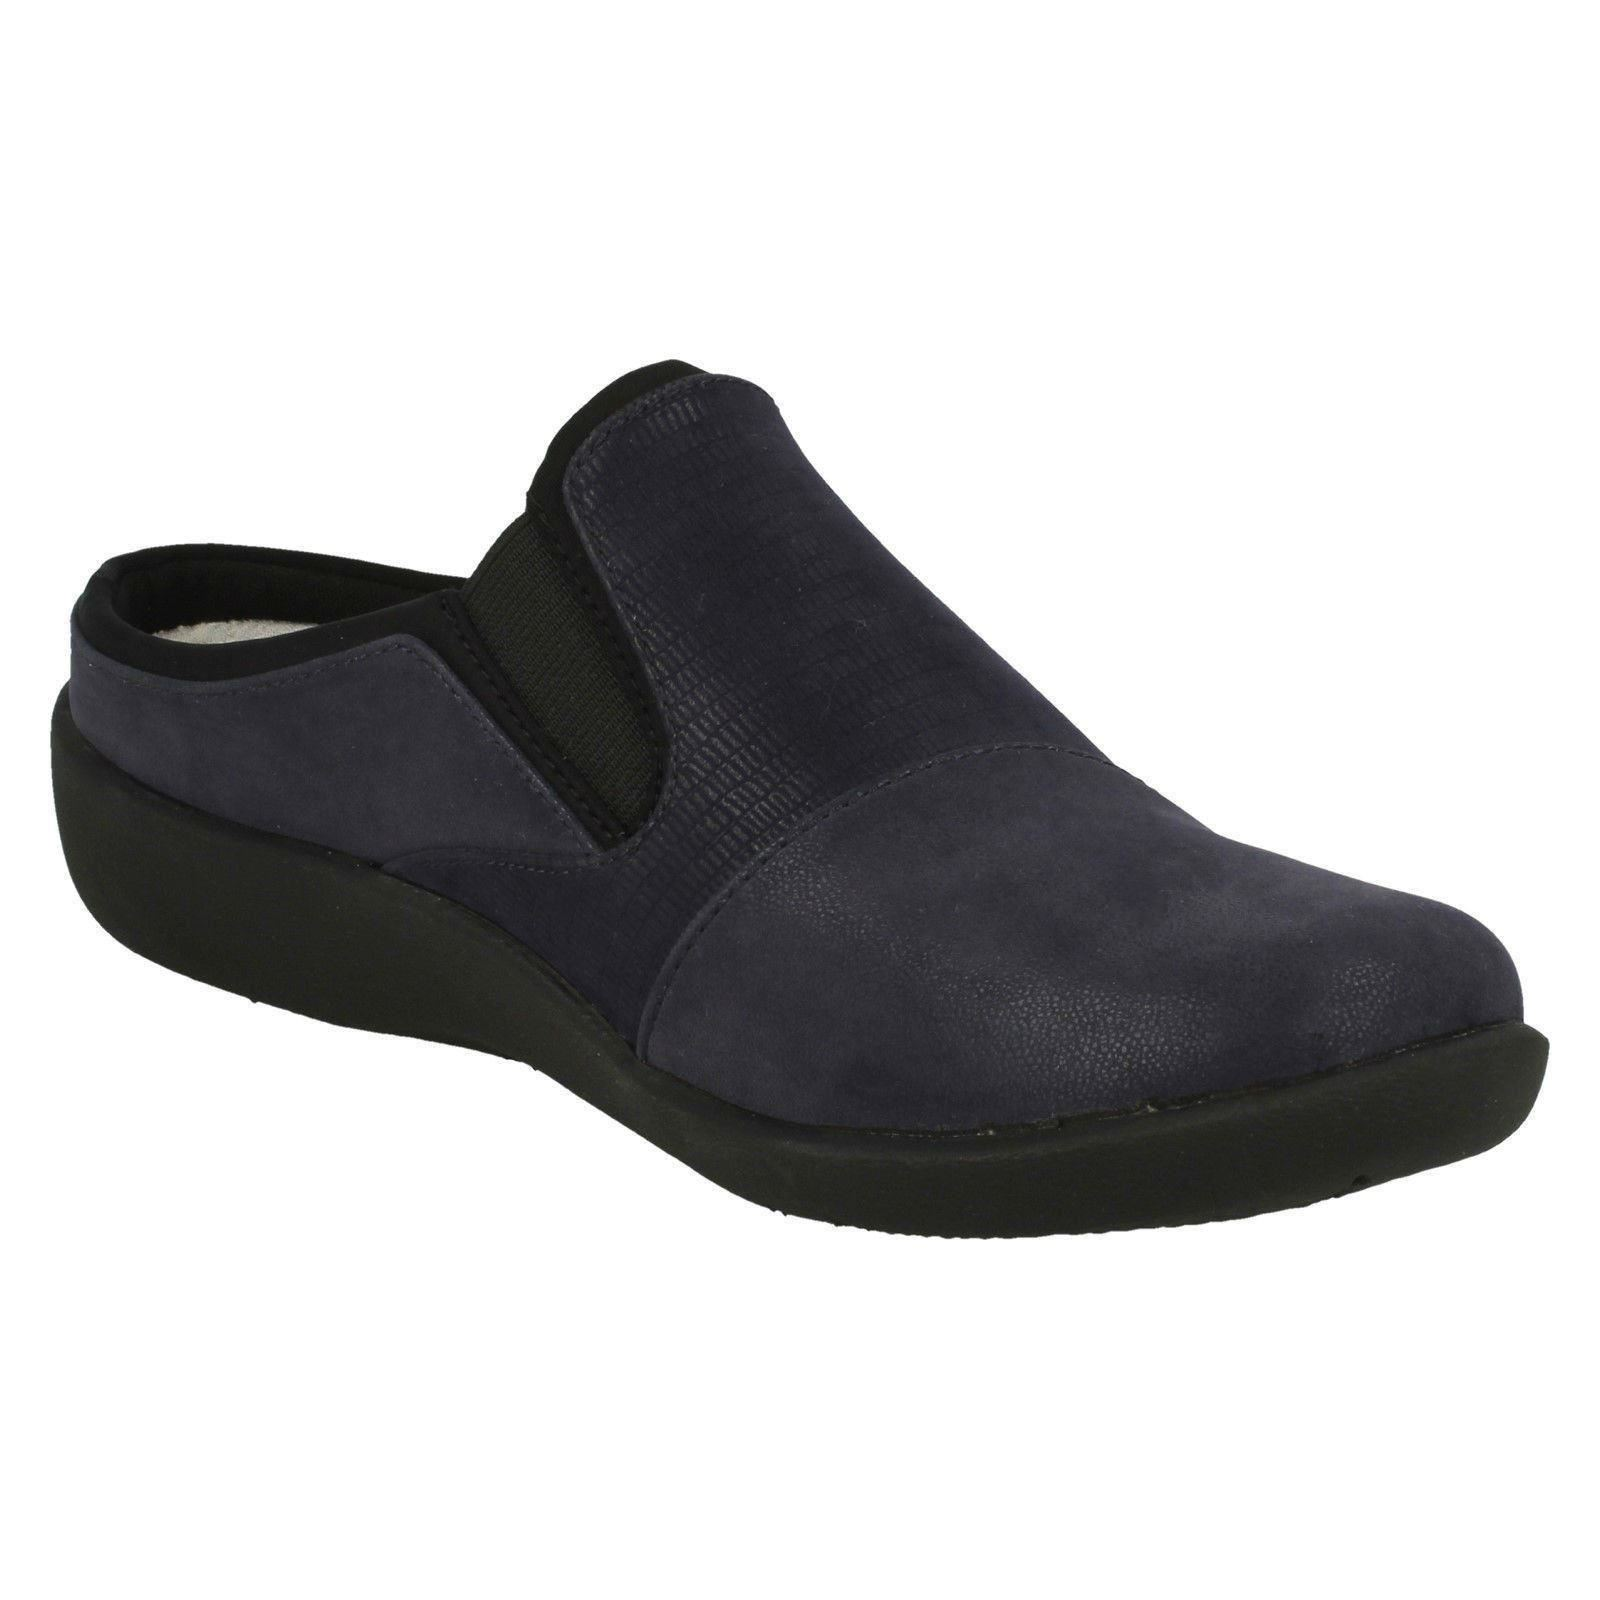 Ladies Clarks Cloud Steppers Mule Shoes Sillian Sillian Shoes Free 7c5be0